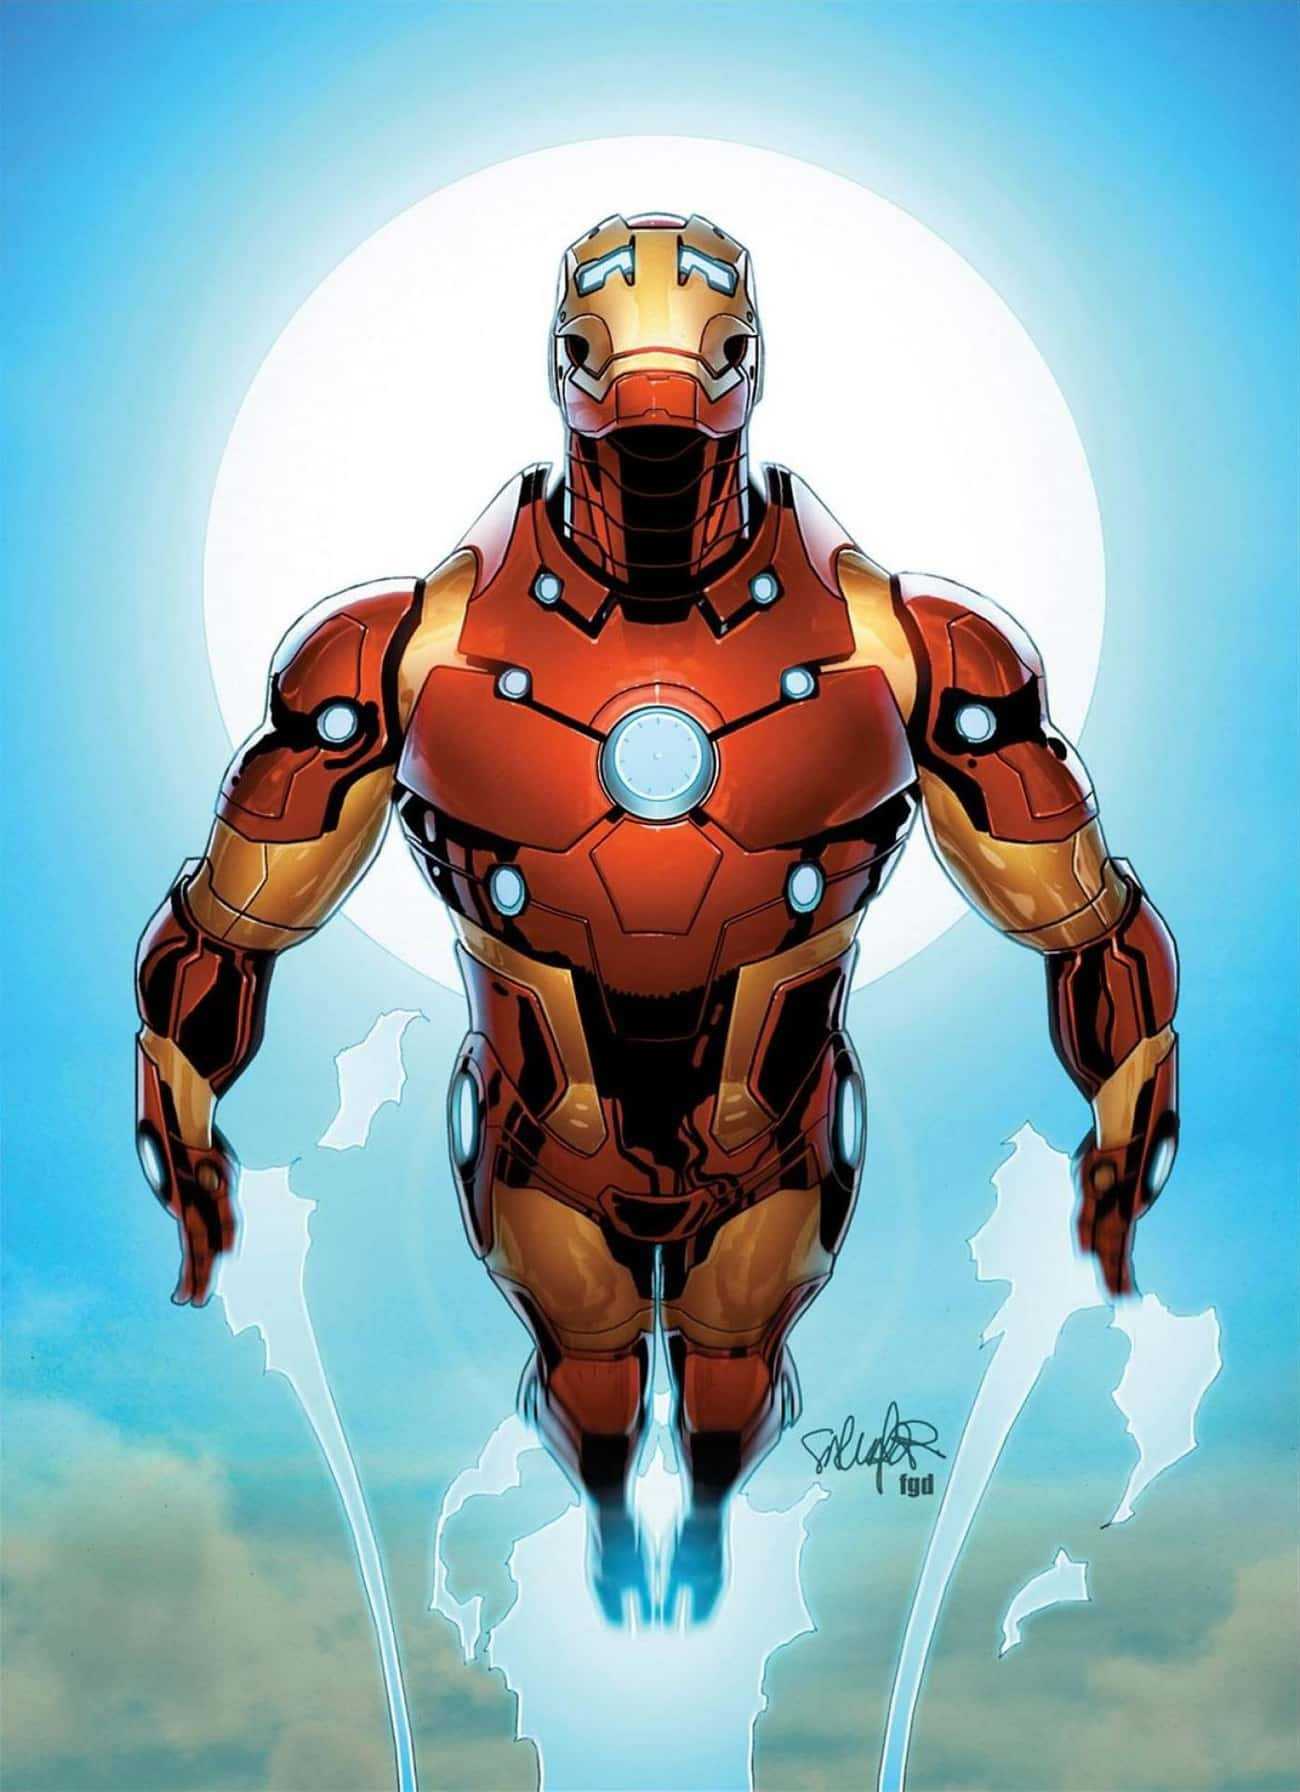 Bleeding Edge Armor is listed (or ranked) 2 on the list The Greatest Iron Man Armor of All Time